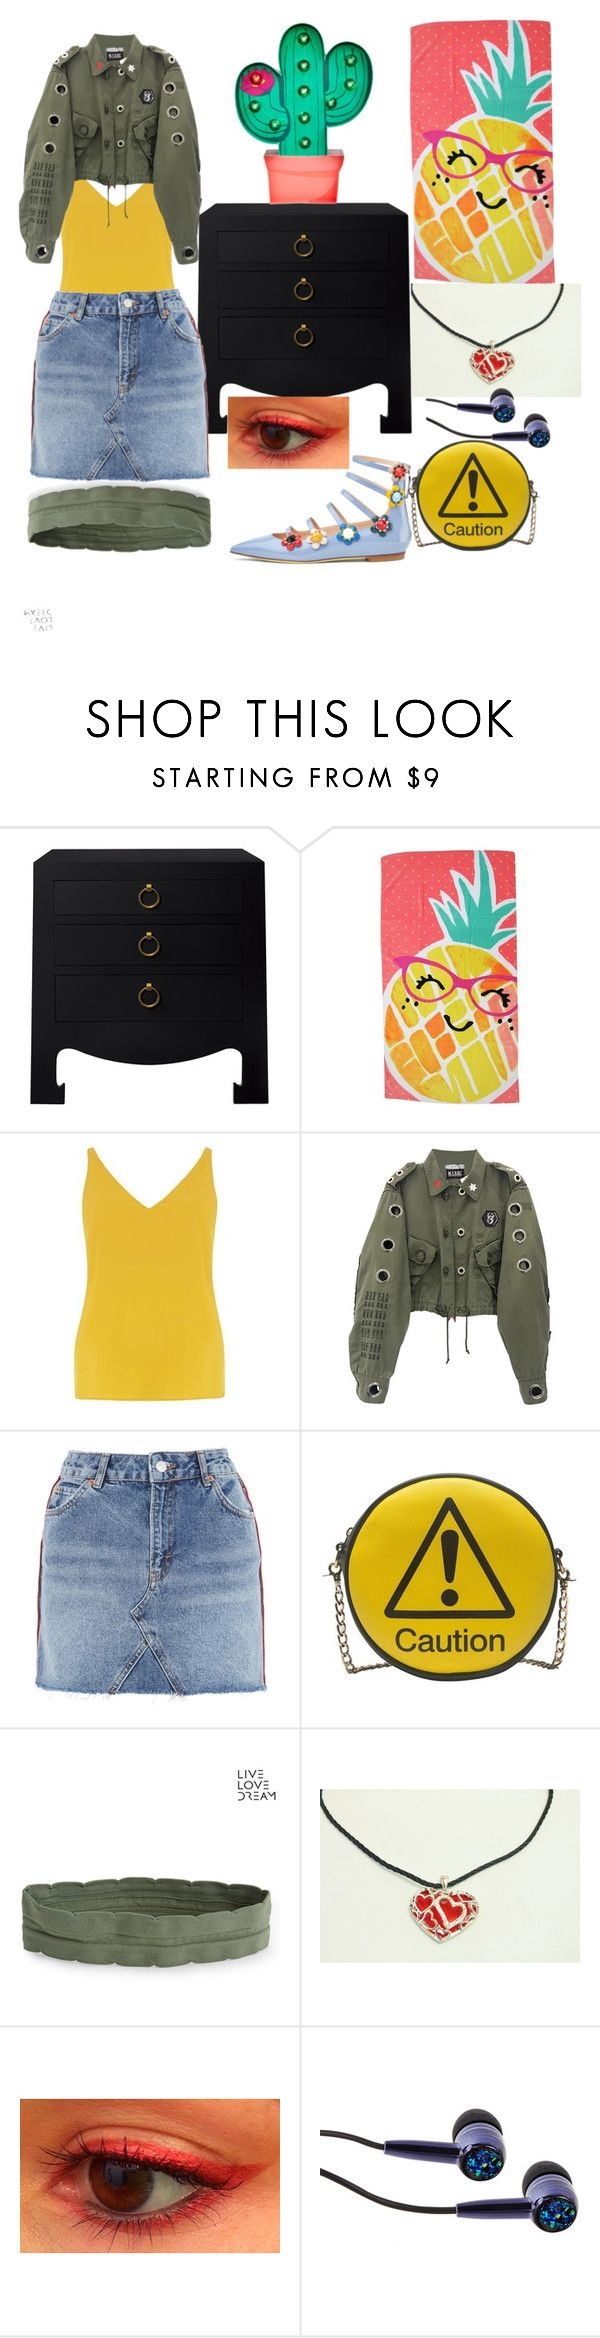 """Untitled #38"" by yasm-ina ❤ liked on Polyvore featuring Bungalow 5, Evergreen, Dorothy Perkins, Topshop, Melie Bianco and Aéropostale"